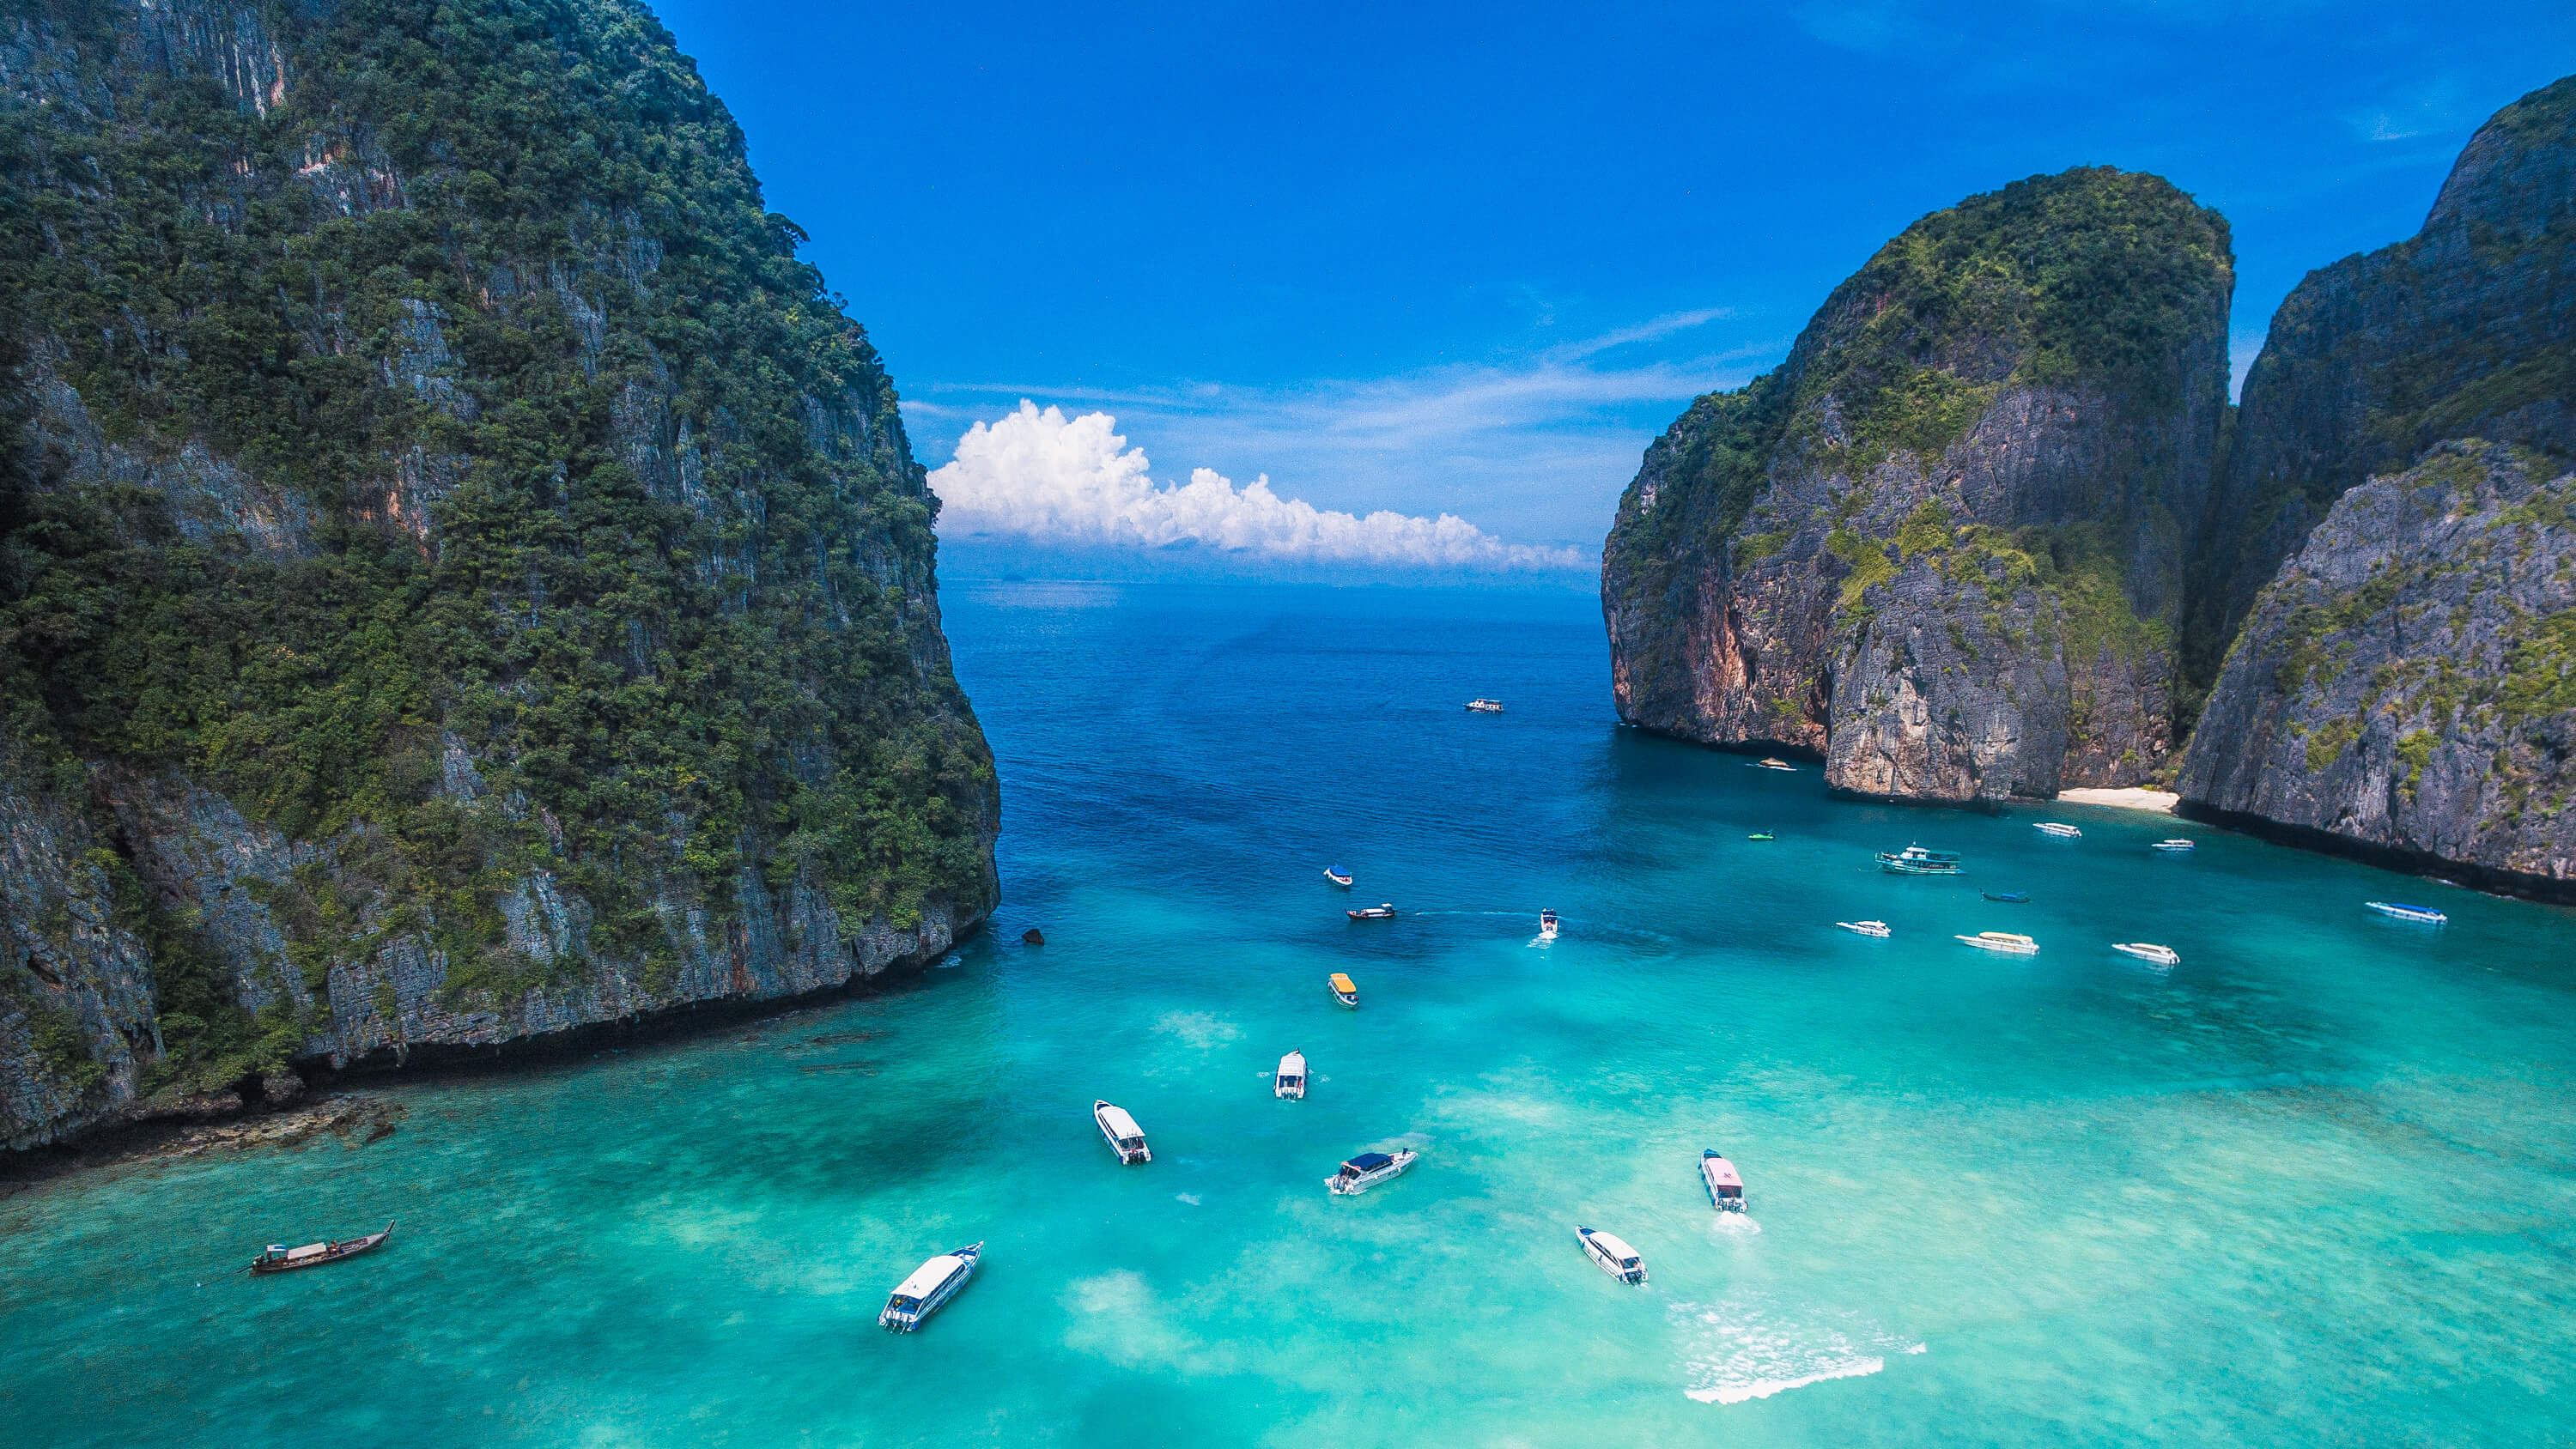 Thailand - Epic summer holiday